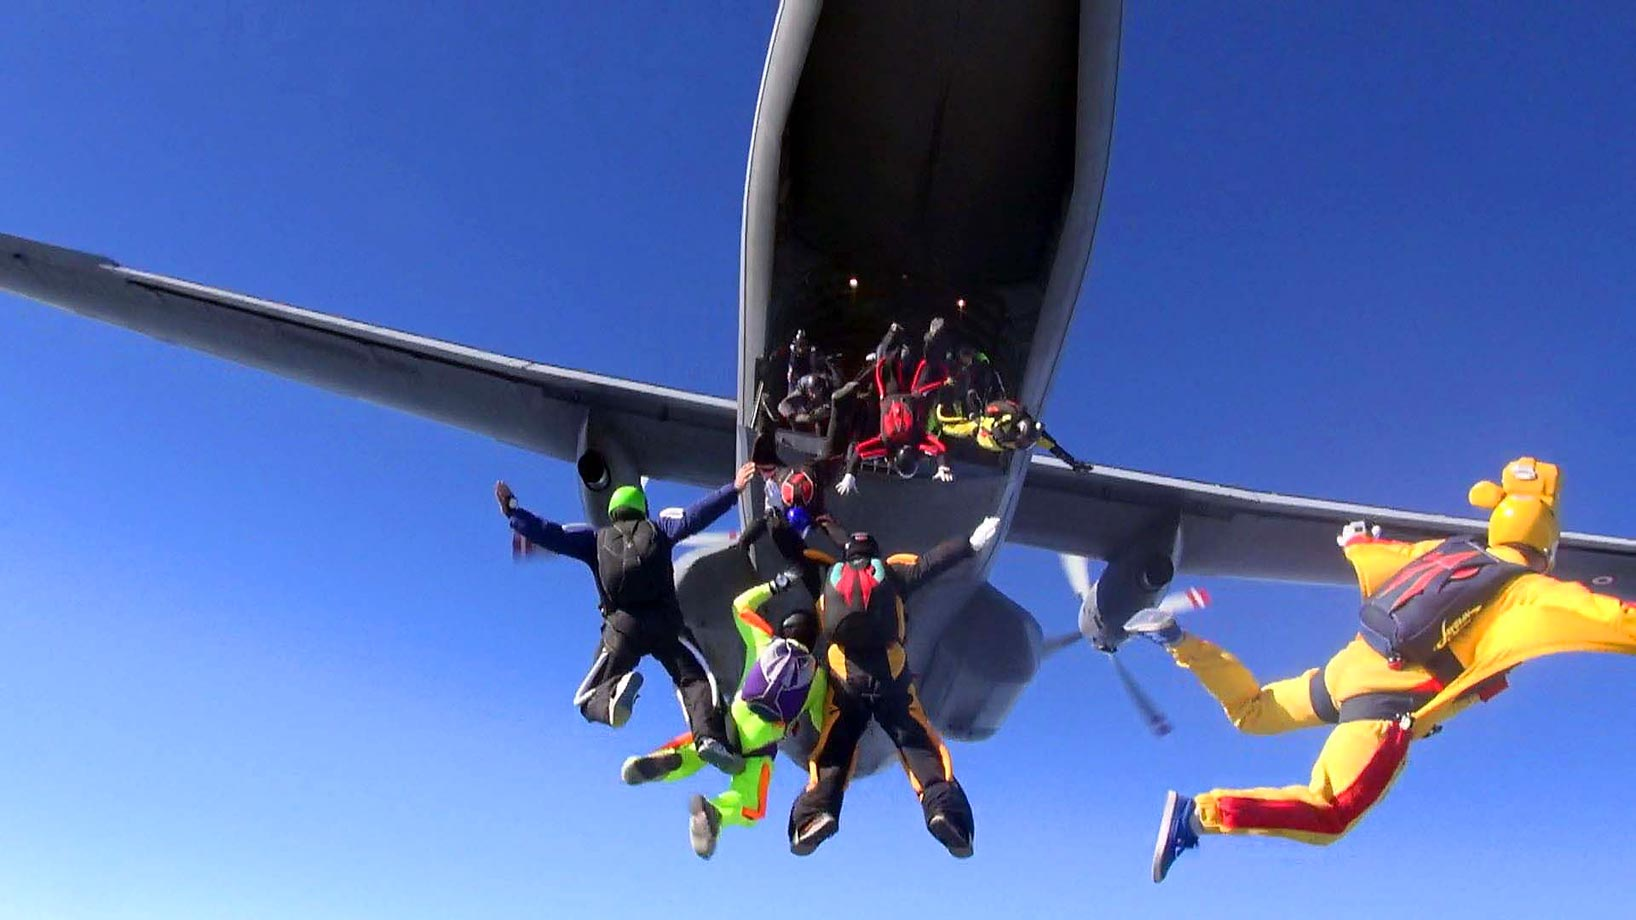 """Thirty-five skydivers try to set a record for """"Big Way Turkey Multi-Skydiving"""" with the support of the Turkish Armed Forces in Izmir, Turkey. The old record was set with 24 skydivers."""